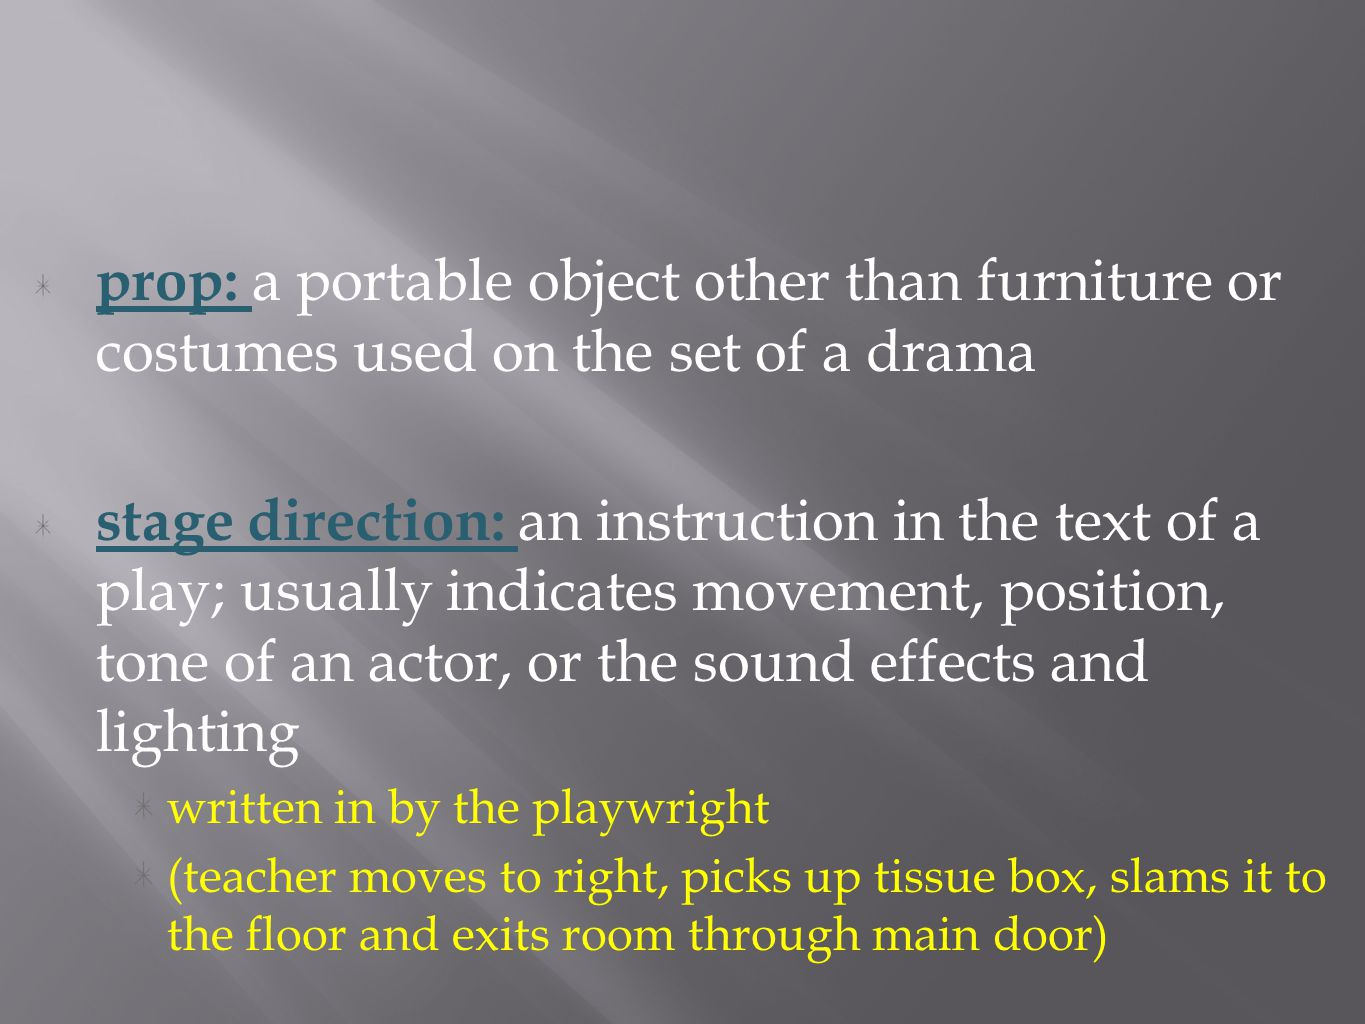 prop: a portable object other than furniture or costumes used on the set of a drama stage direction: an instruction in the text of a play; usually indicates movement, position, tone of an actor, or the sound effects and lighting written in by the playwright (teacher moves to right, picks up tissue box, slams it to the floor and exits room through main door)